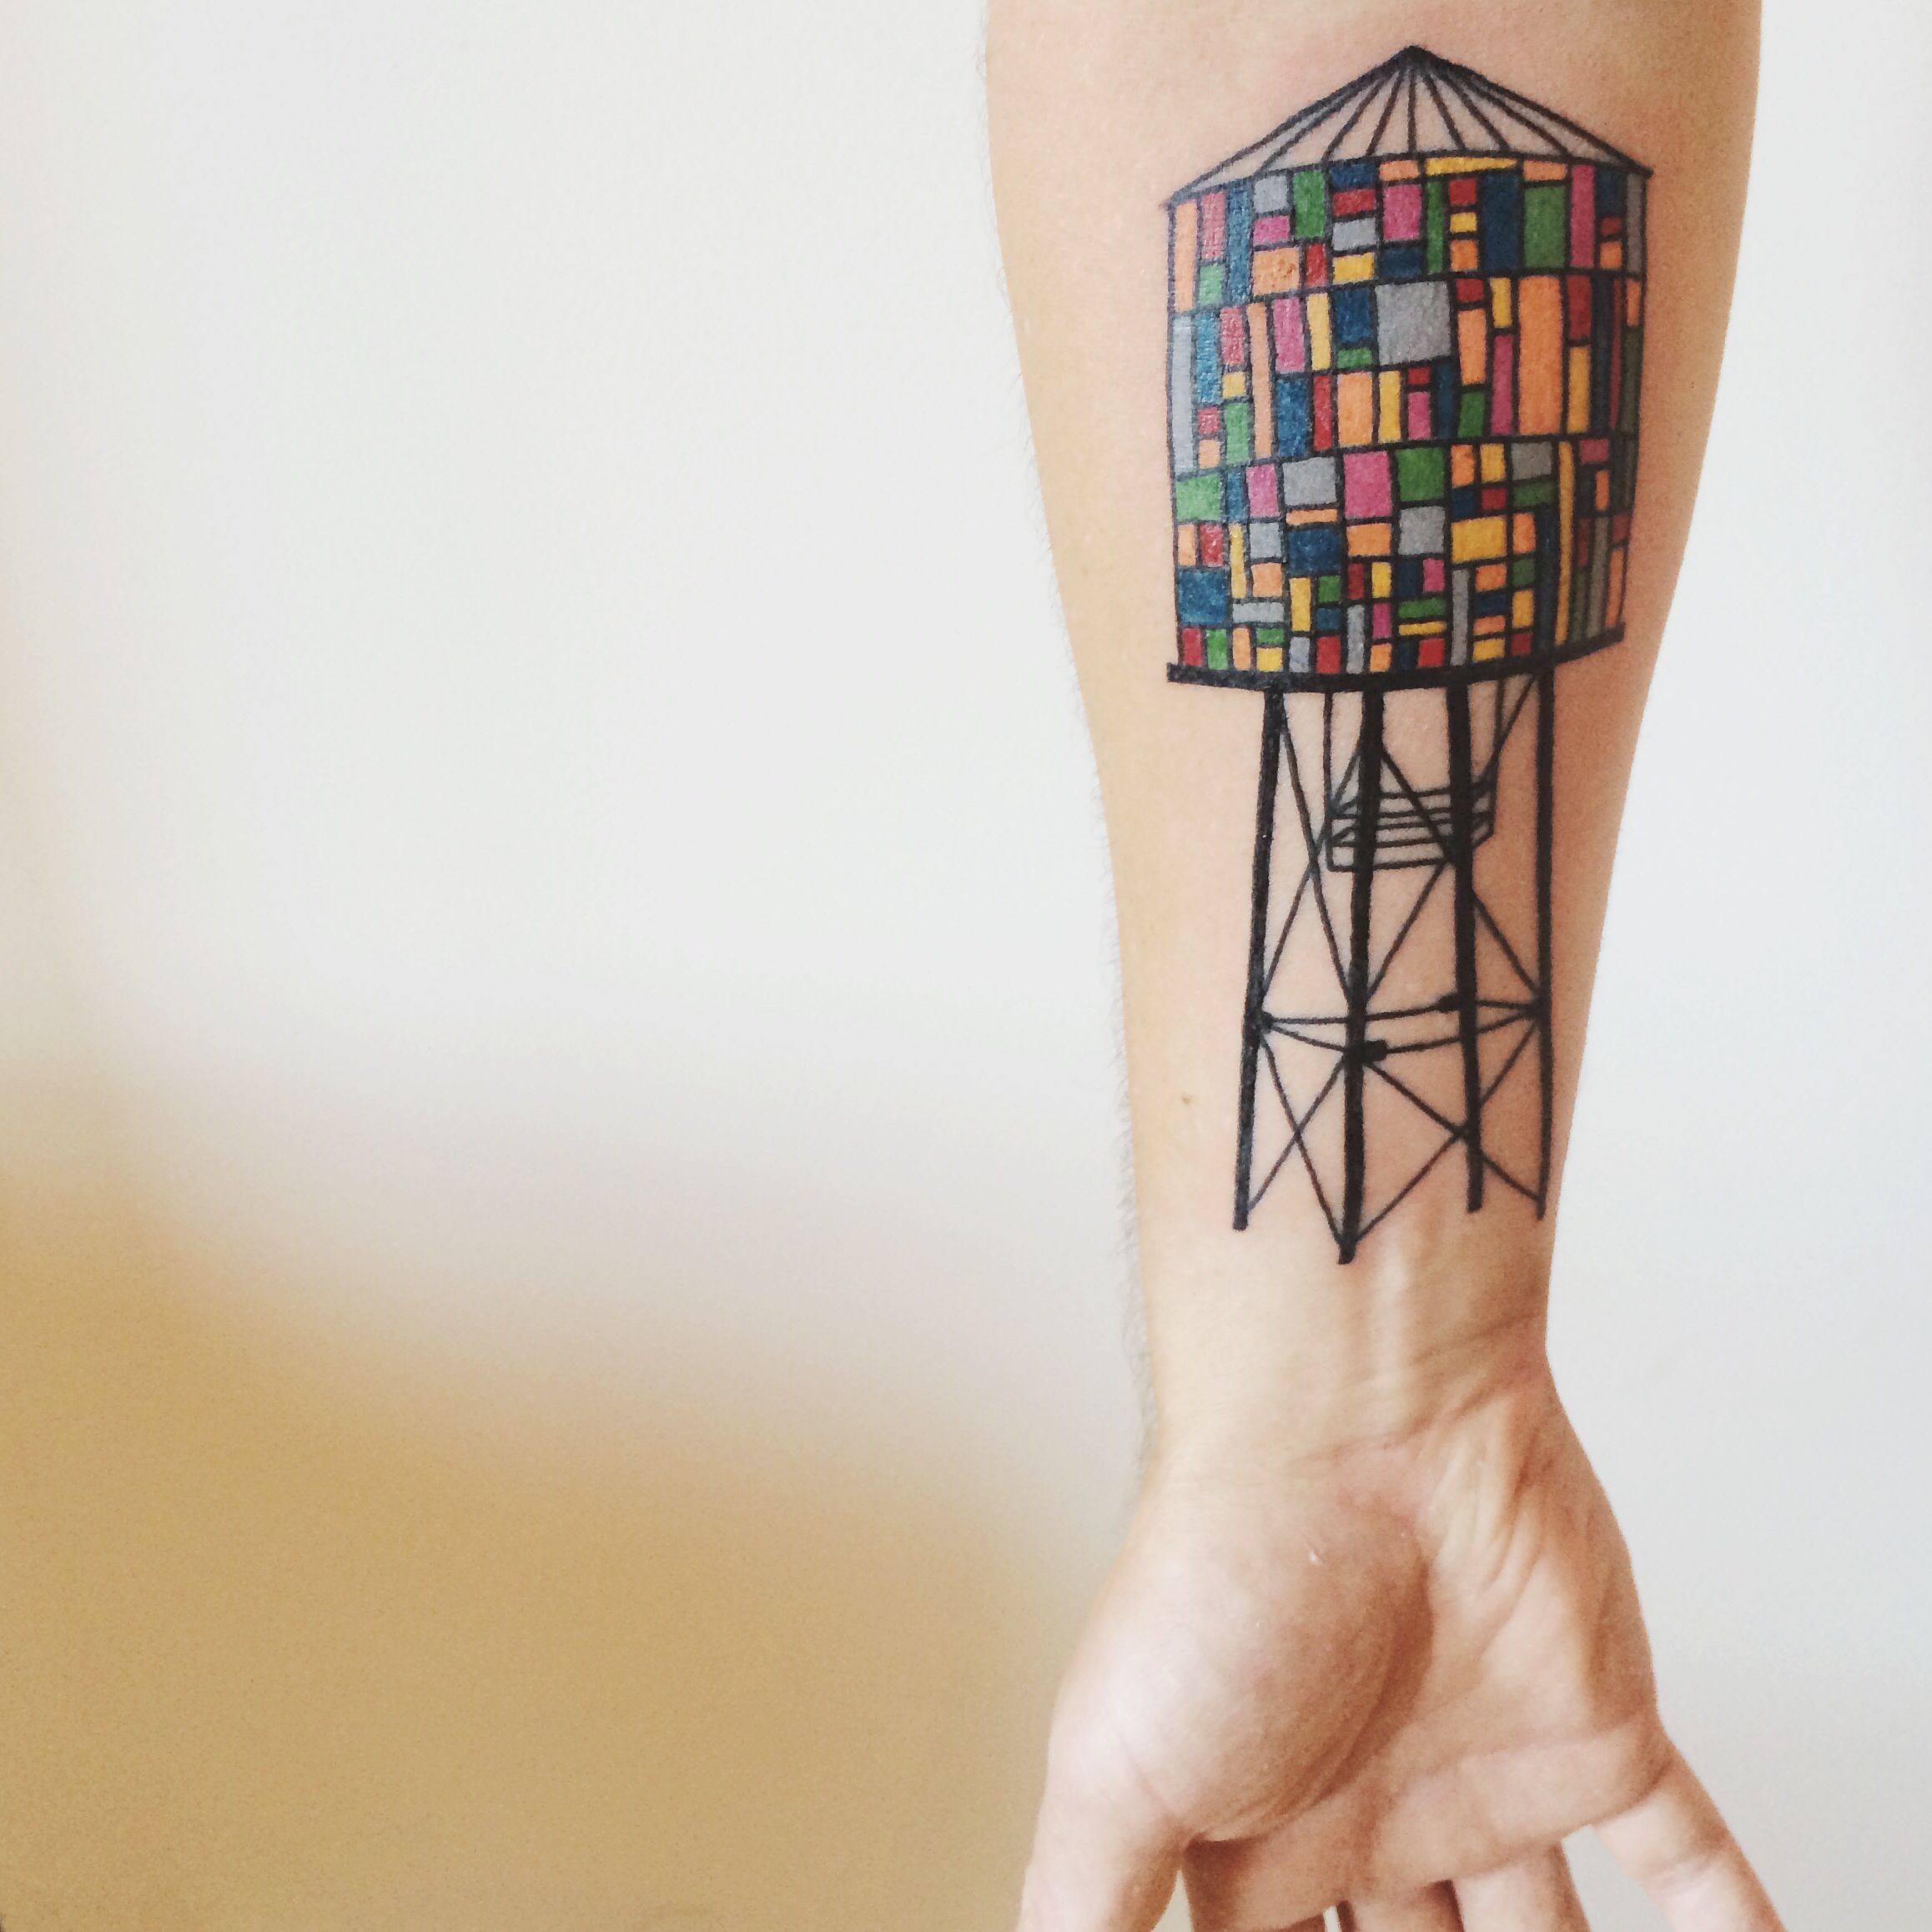 Stained glass Brooklyn water tower tattoo! #tattoo #watertower #gay #art